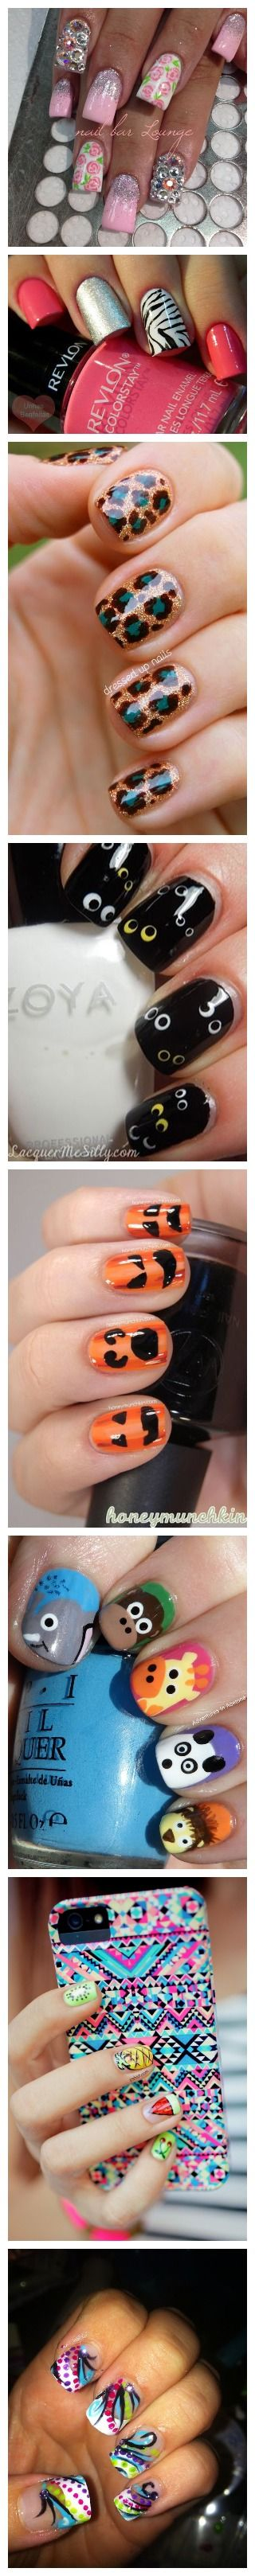 1089 best Nails wow! images on Pinterest | Nail art, Nail design and ...